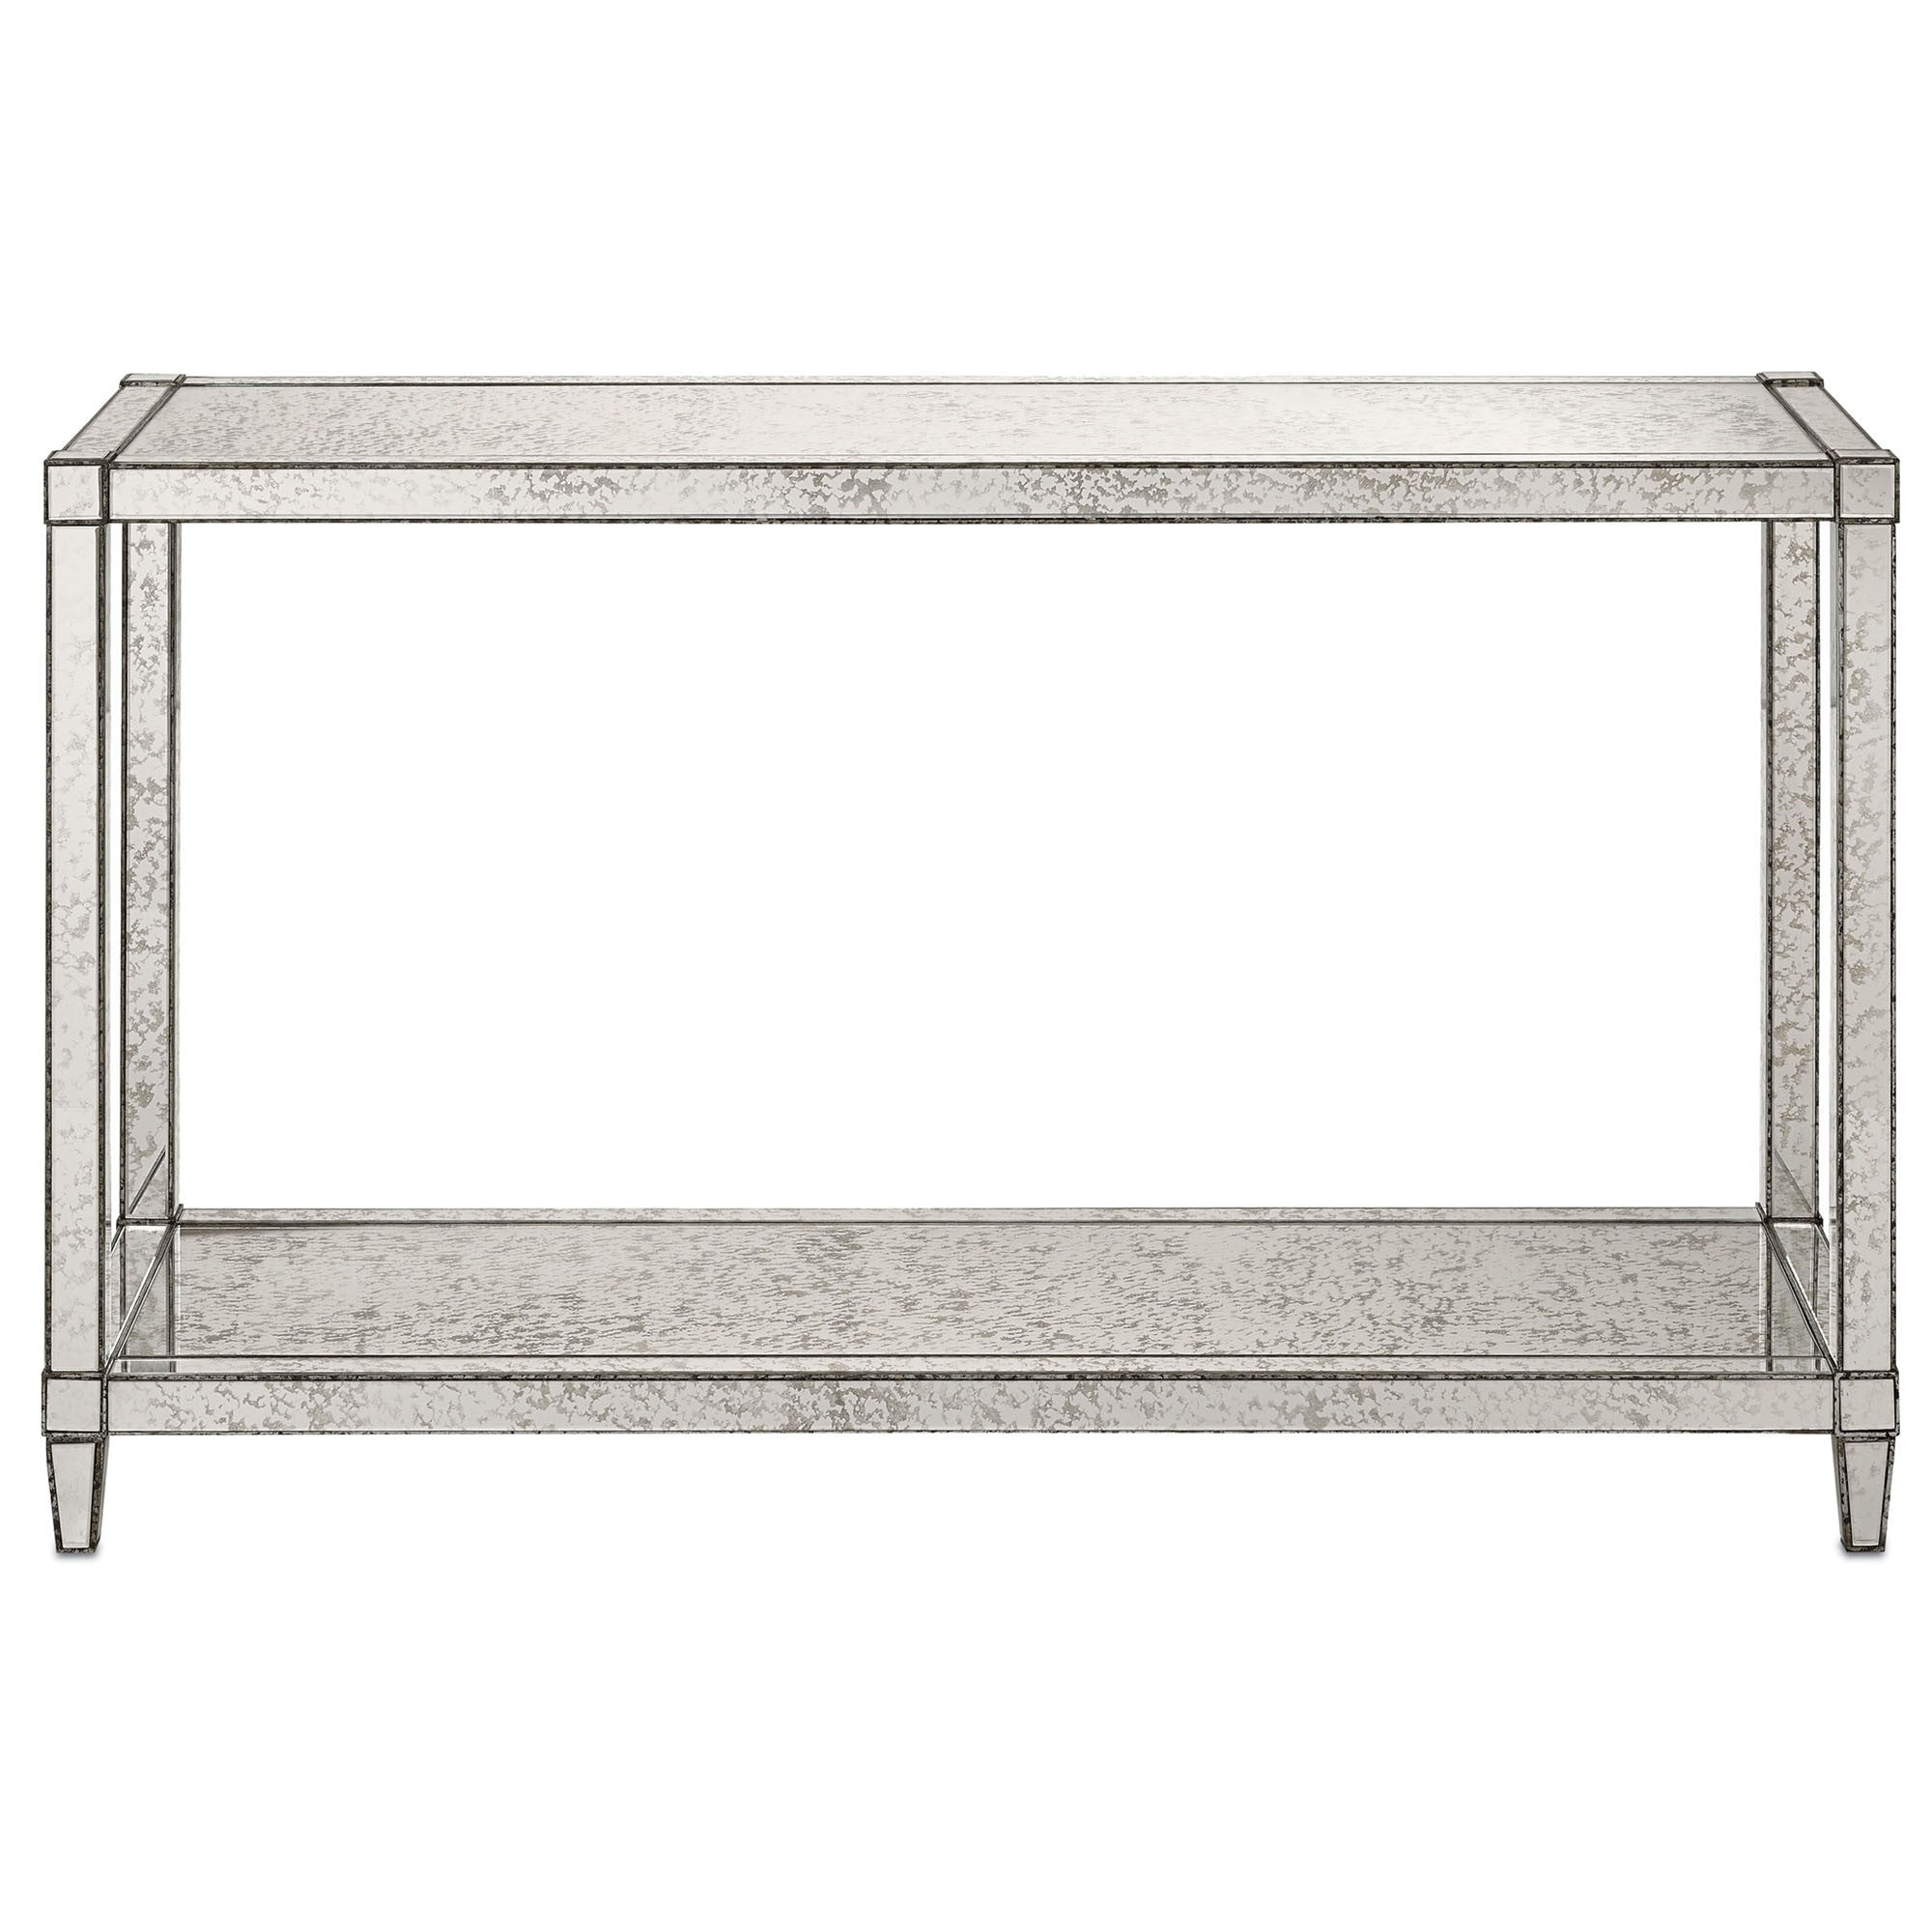 Currey and Co - Monarch Console Table